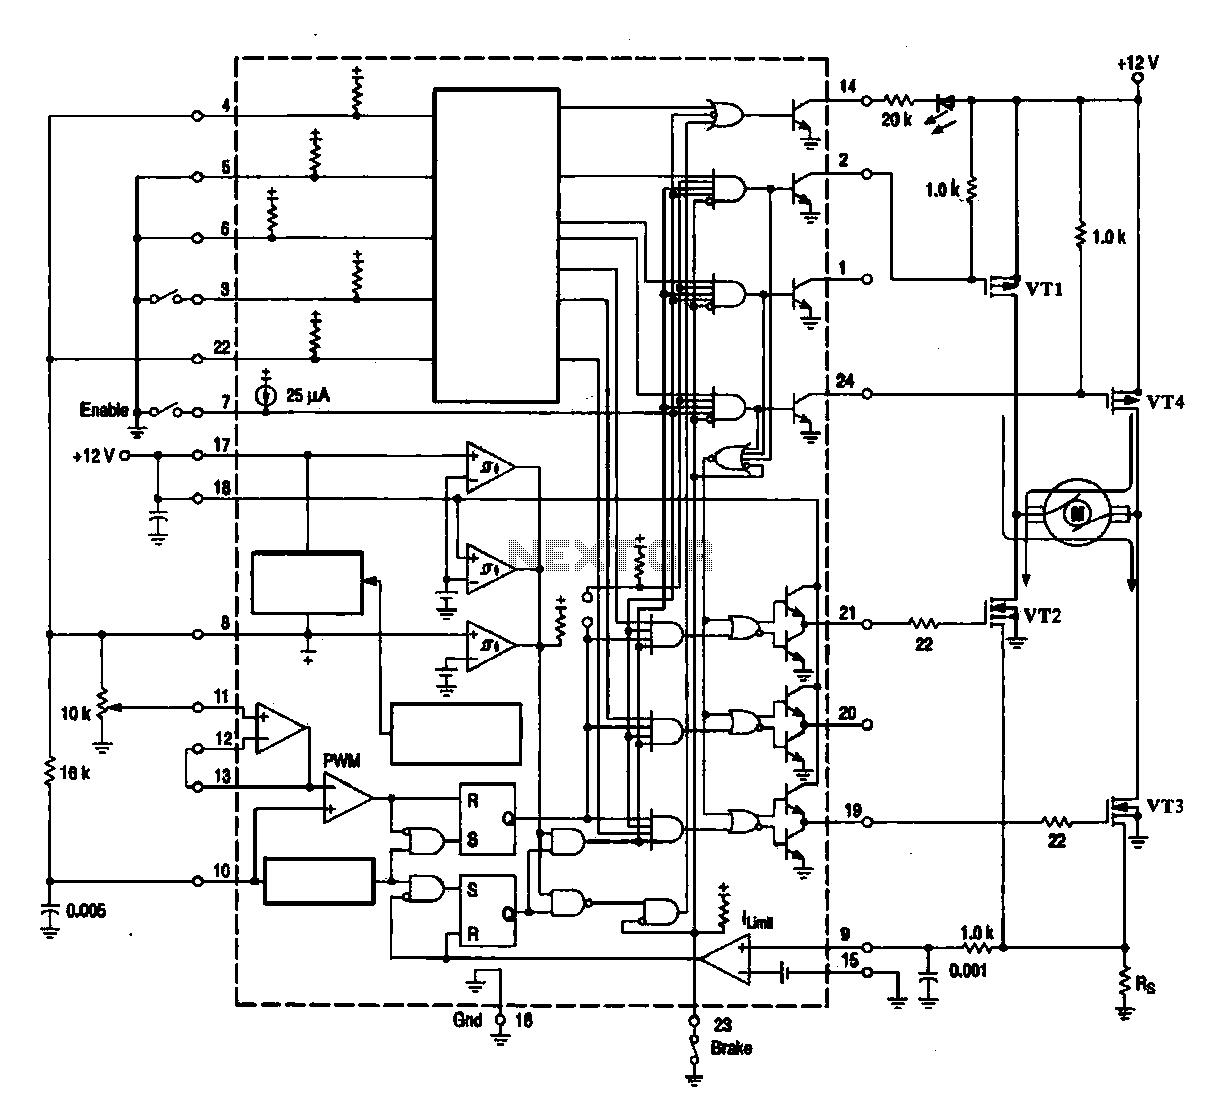 DC brush motor driver circuit diagram : Motor Control